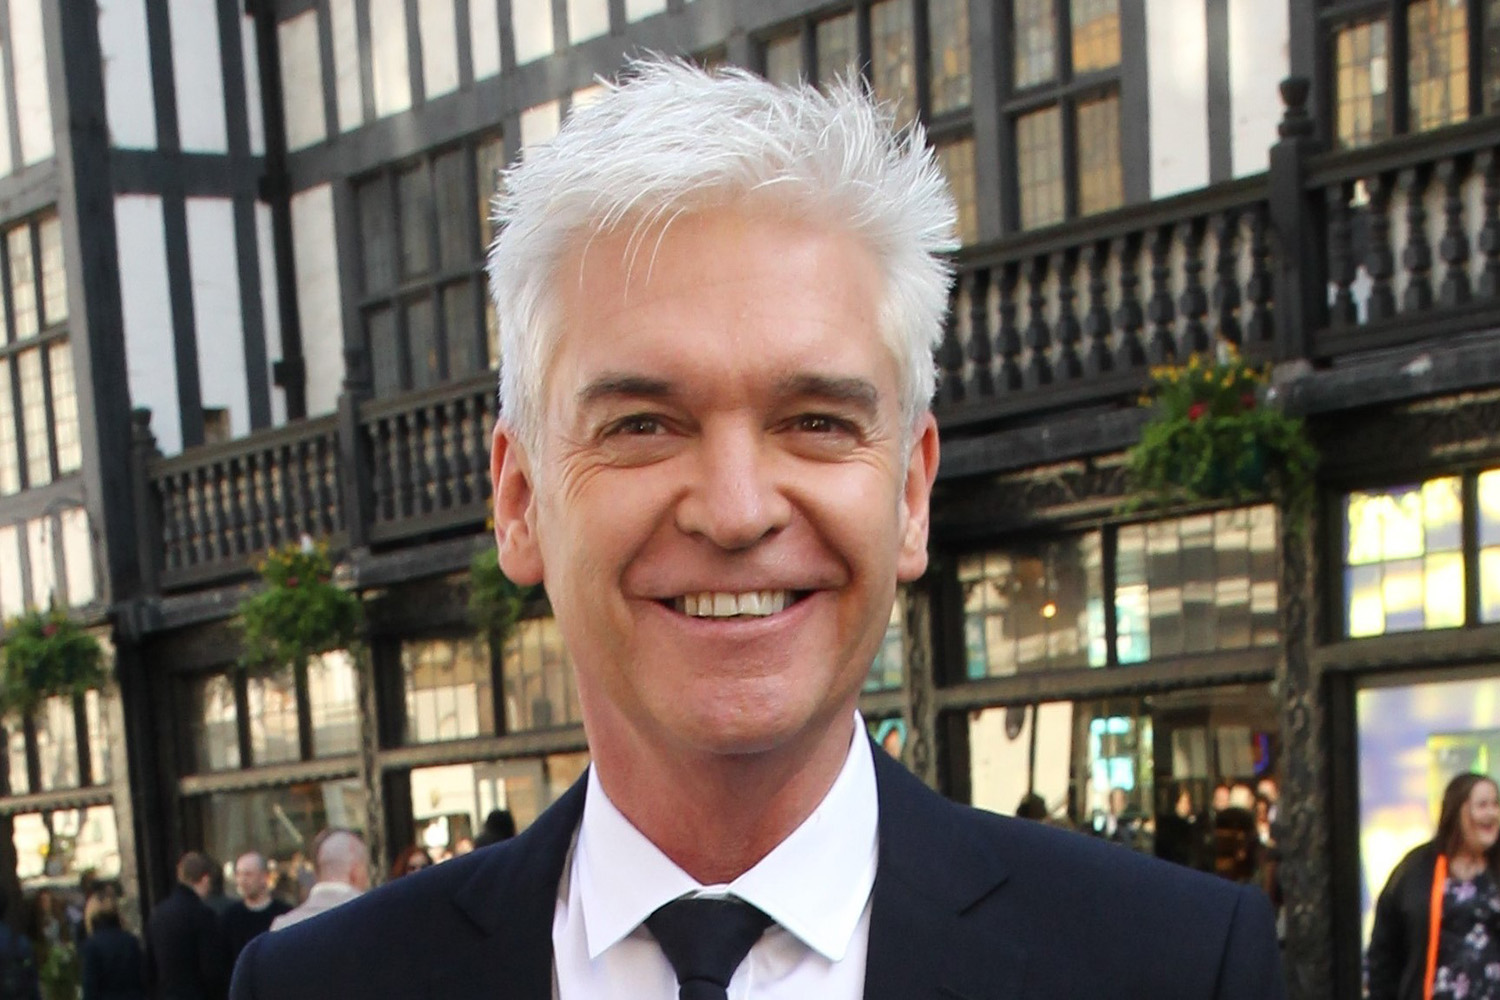 Phillip Schofield finally gets his hair cut by stylist after four months